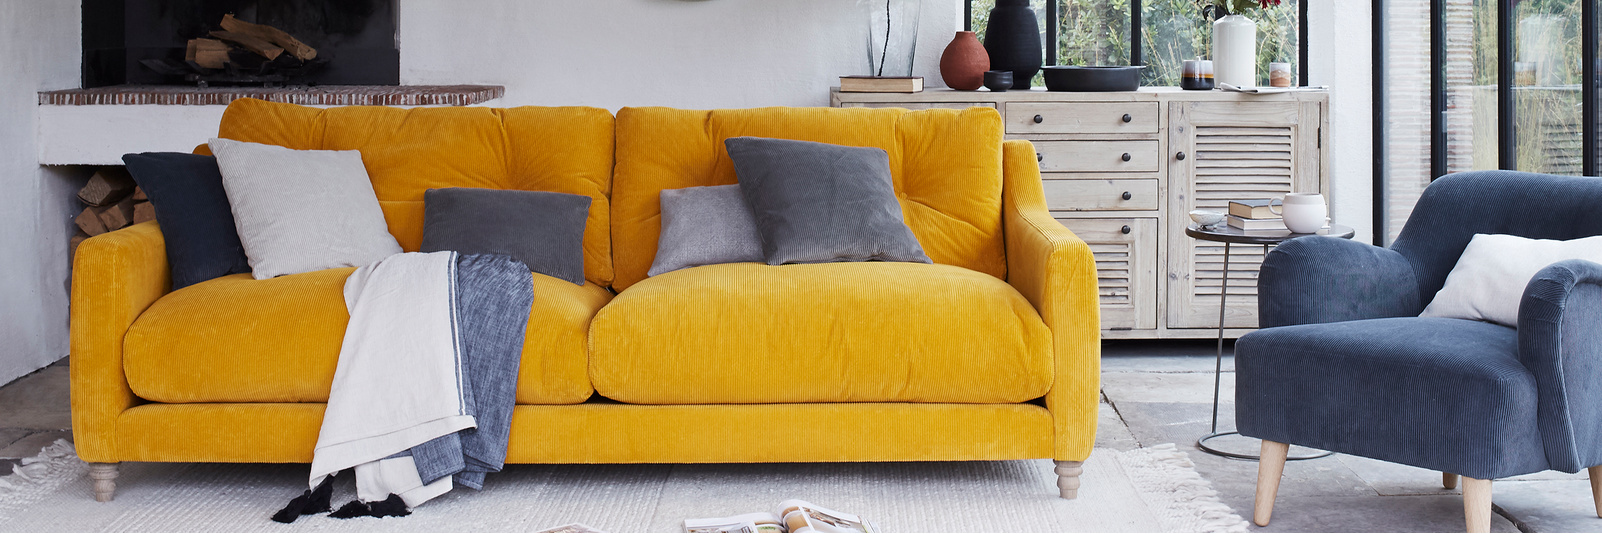 Slim Jim corduroy sofa